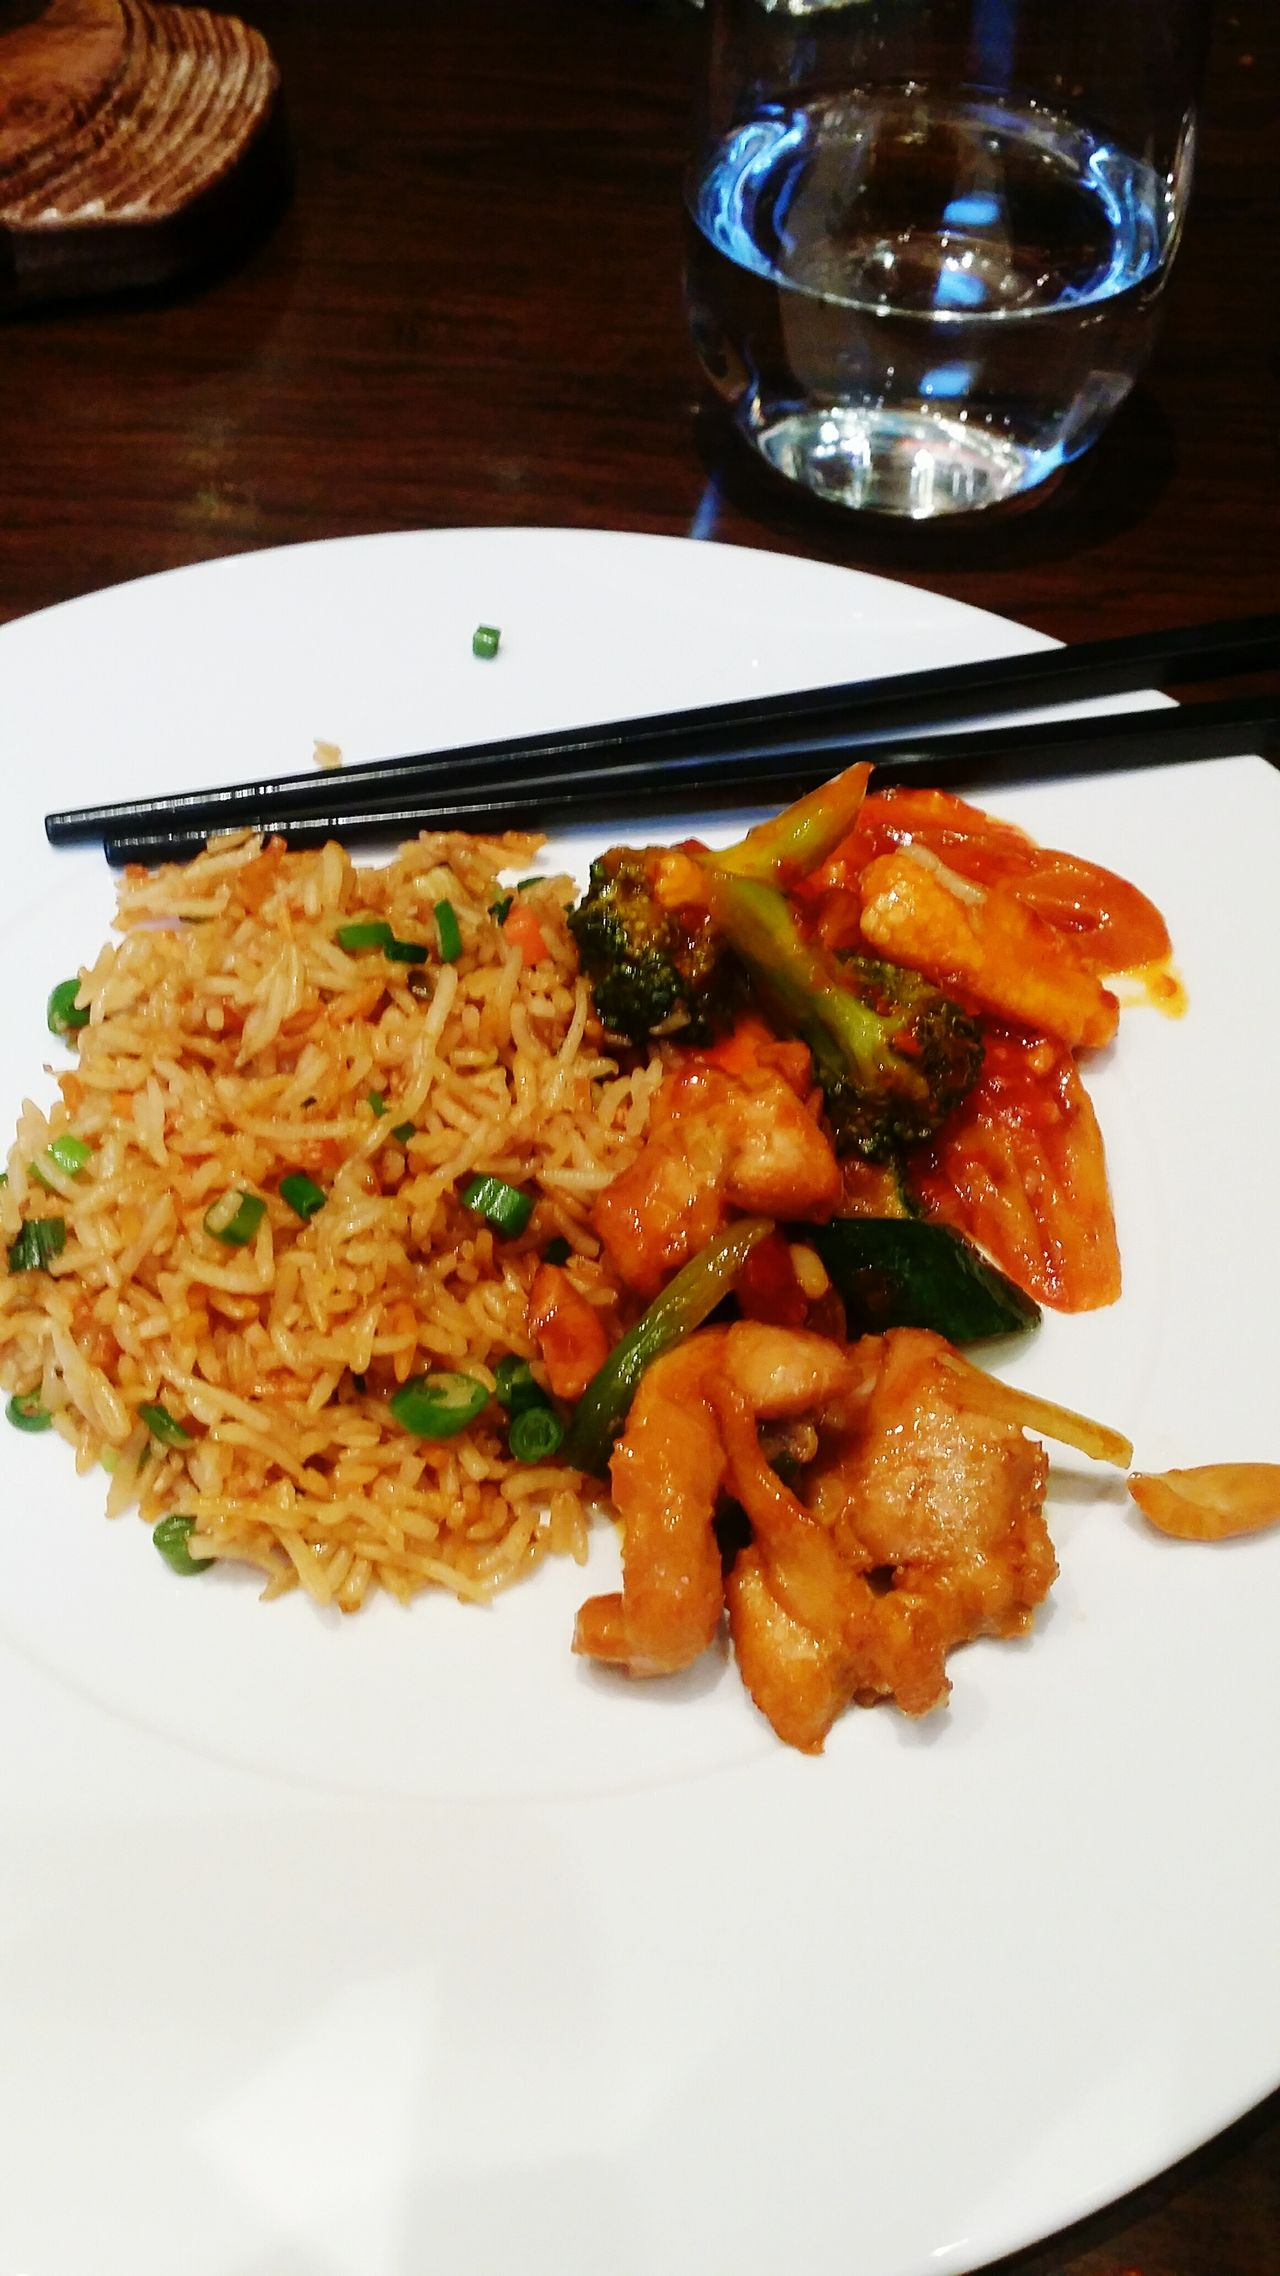 Sharing chinese food with frieds at a restaurant in bangalore, india Memories Of China My World Of Food